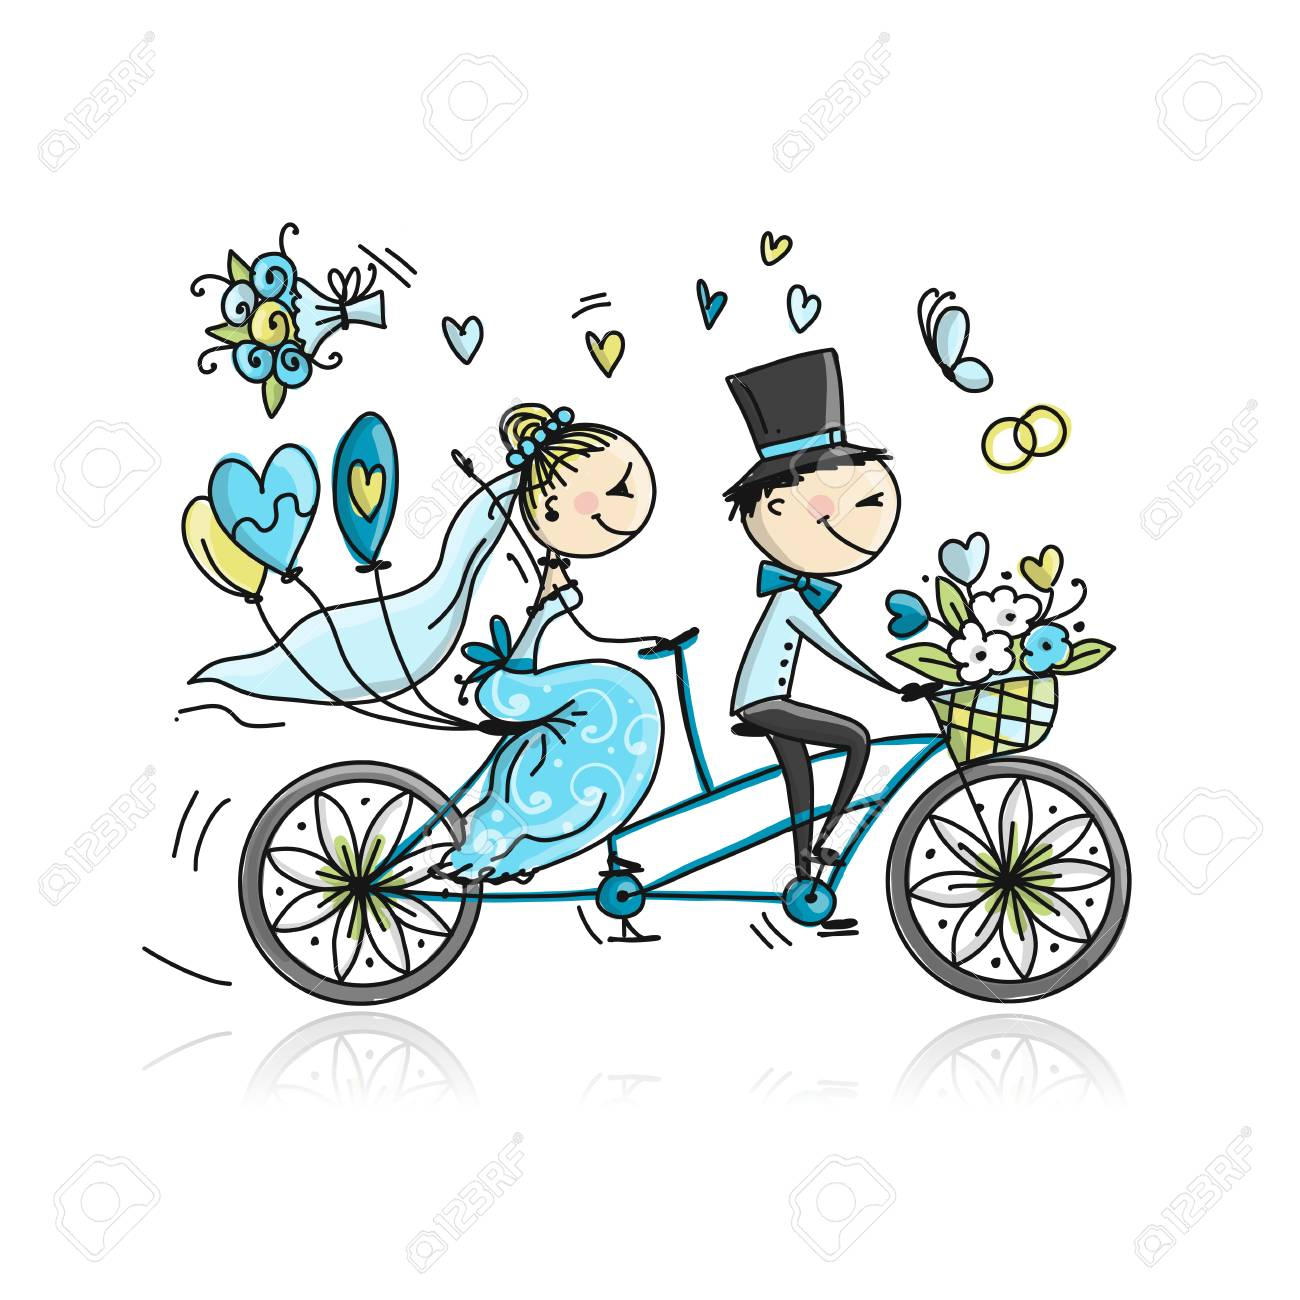 Wedding card design. Bride and groom riding on bicycle. Vector illustration - 110076878